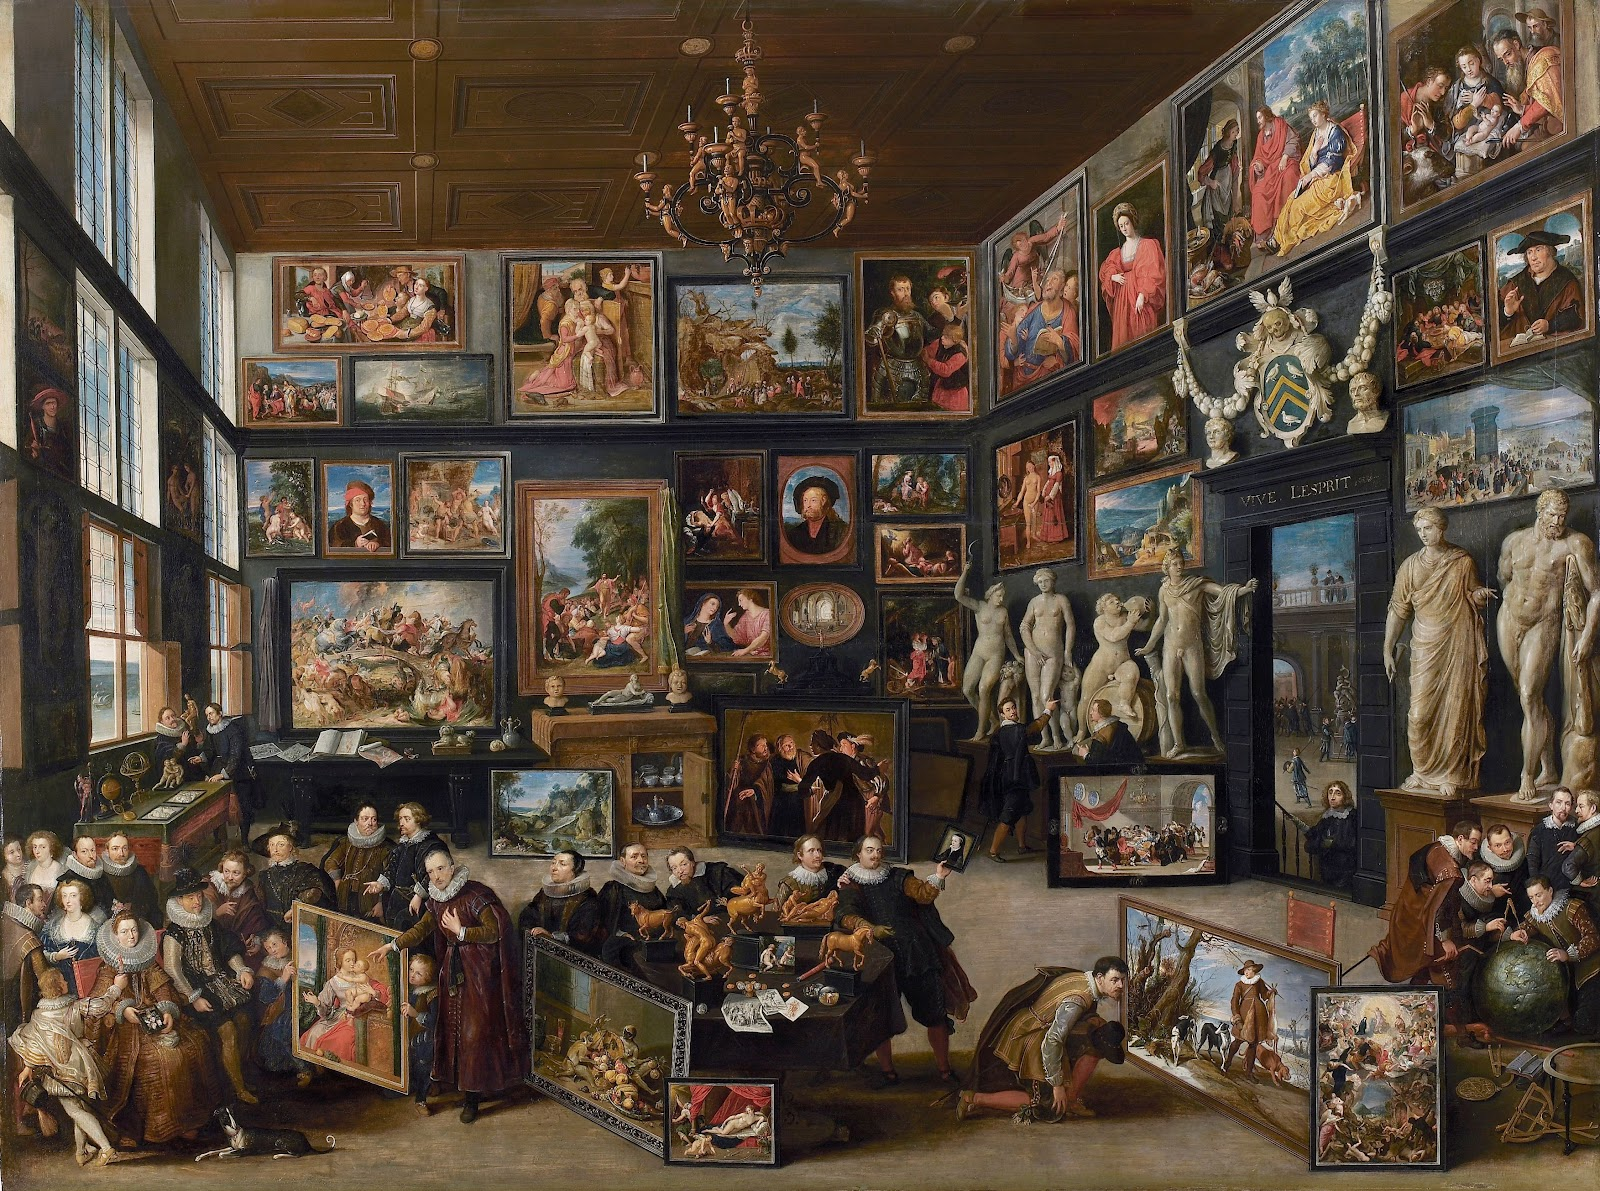 Haecht. The Gallery of Cornelis van der Geest. 1625.2